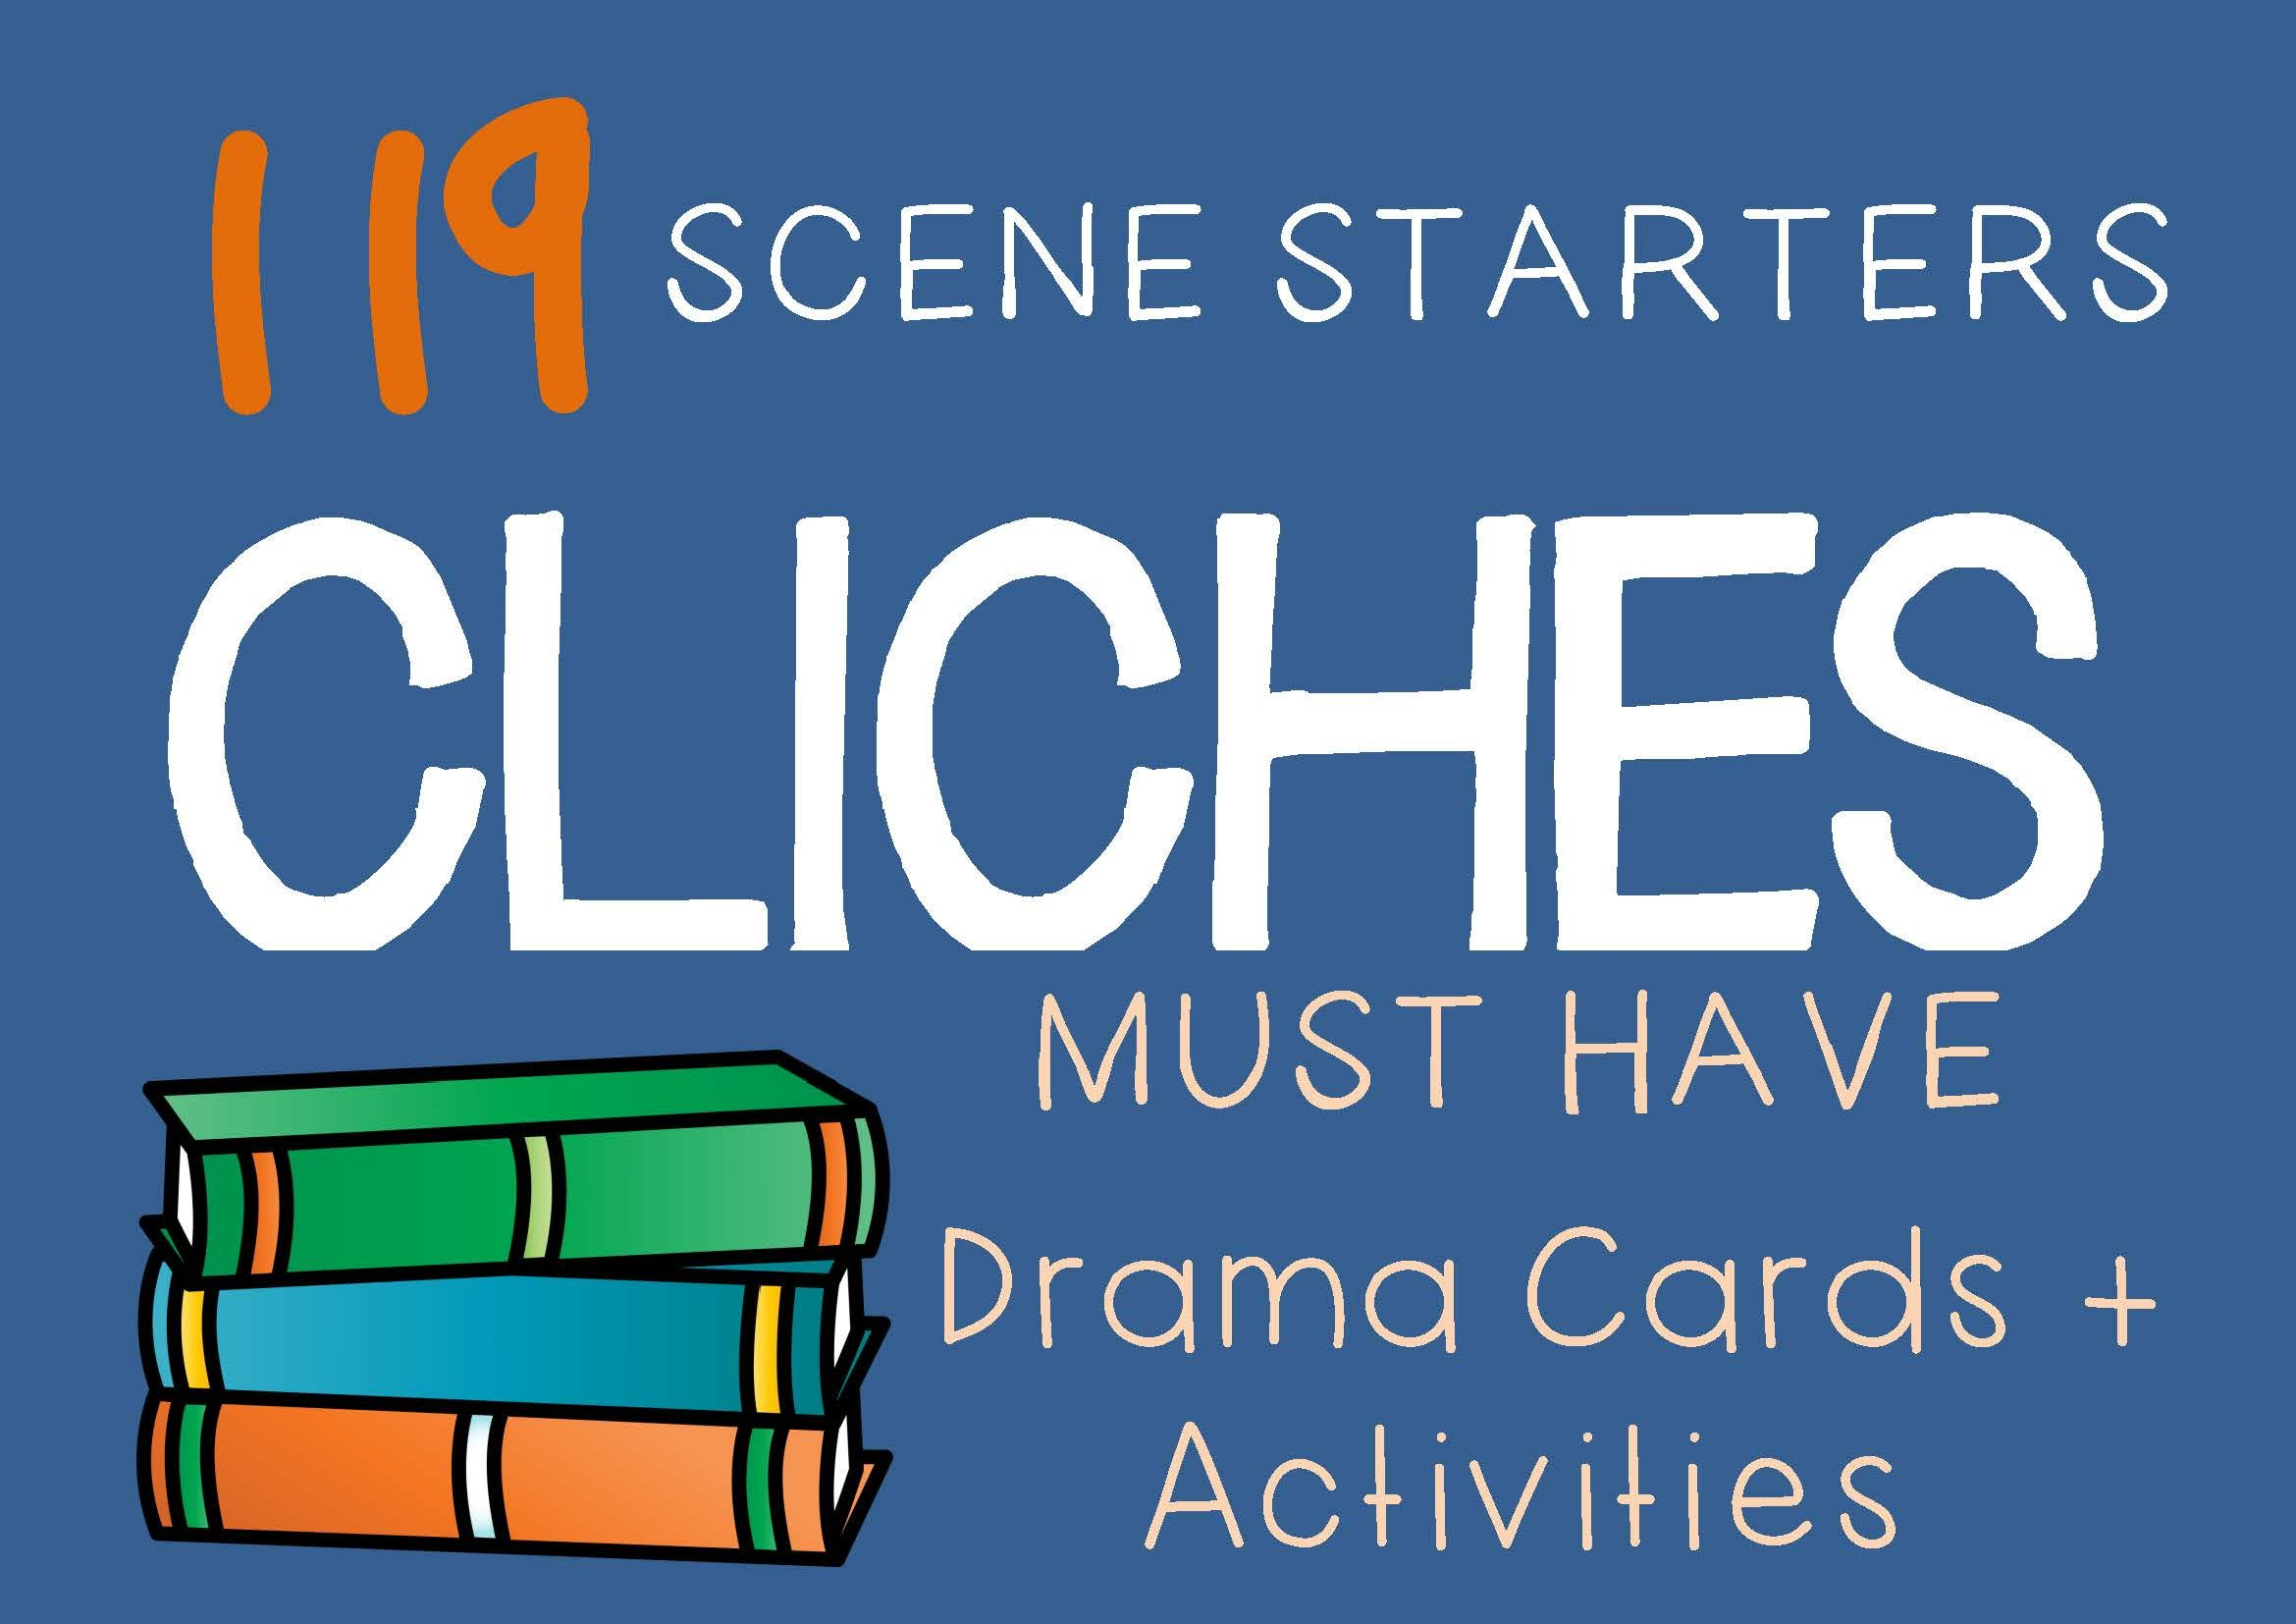 Cliches Teaching Activities! This set of Cliches comes